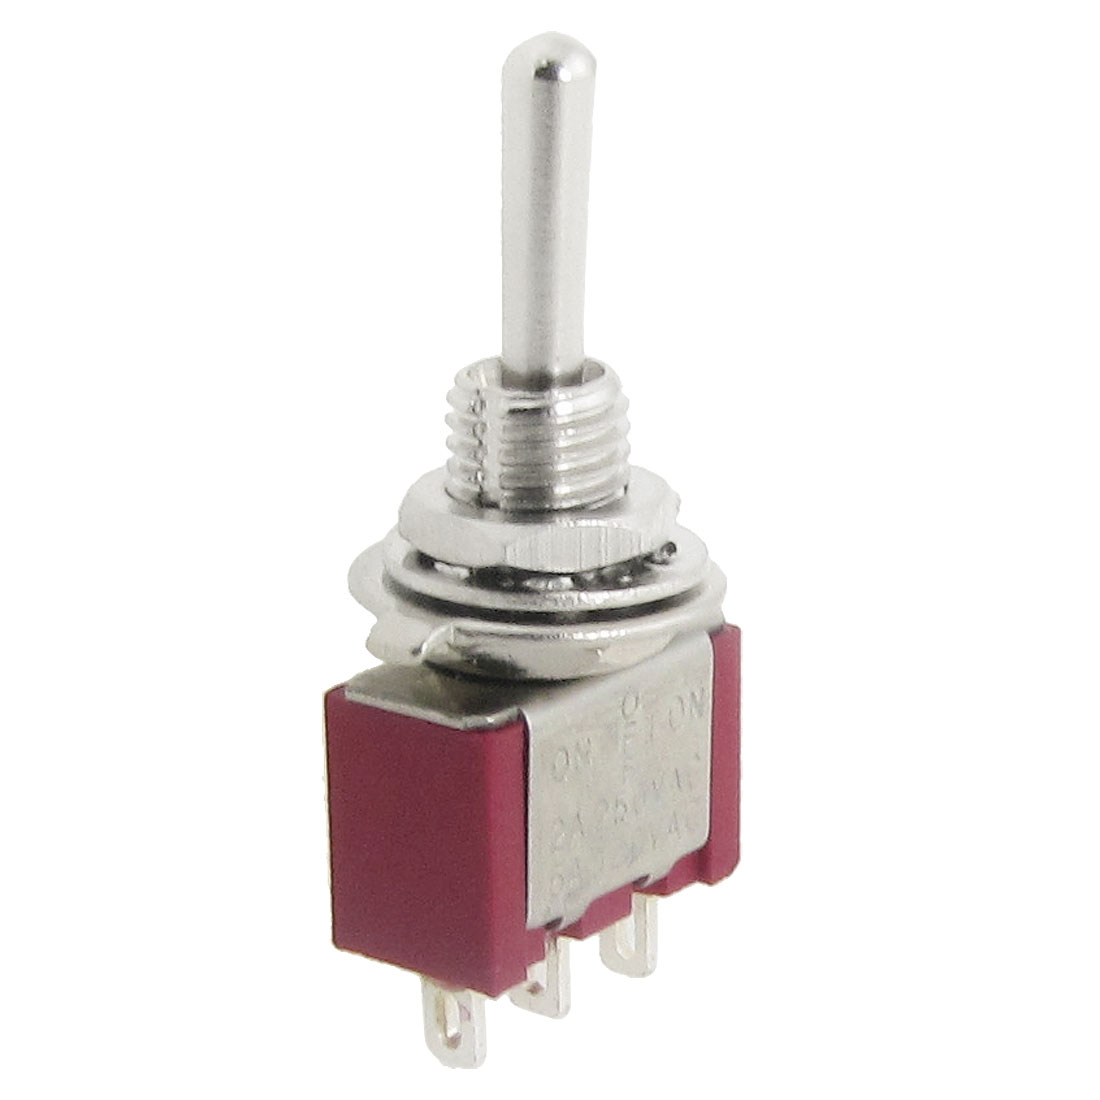 AC 250V 2A 120V 5A SPDT On/Off/On 3 Position Momentary Toggle Switch